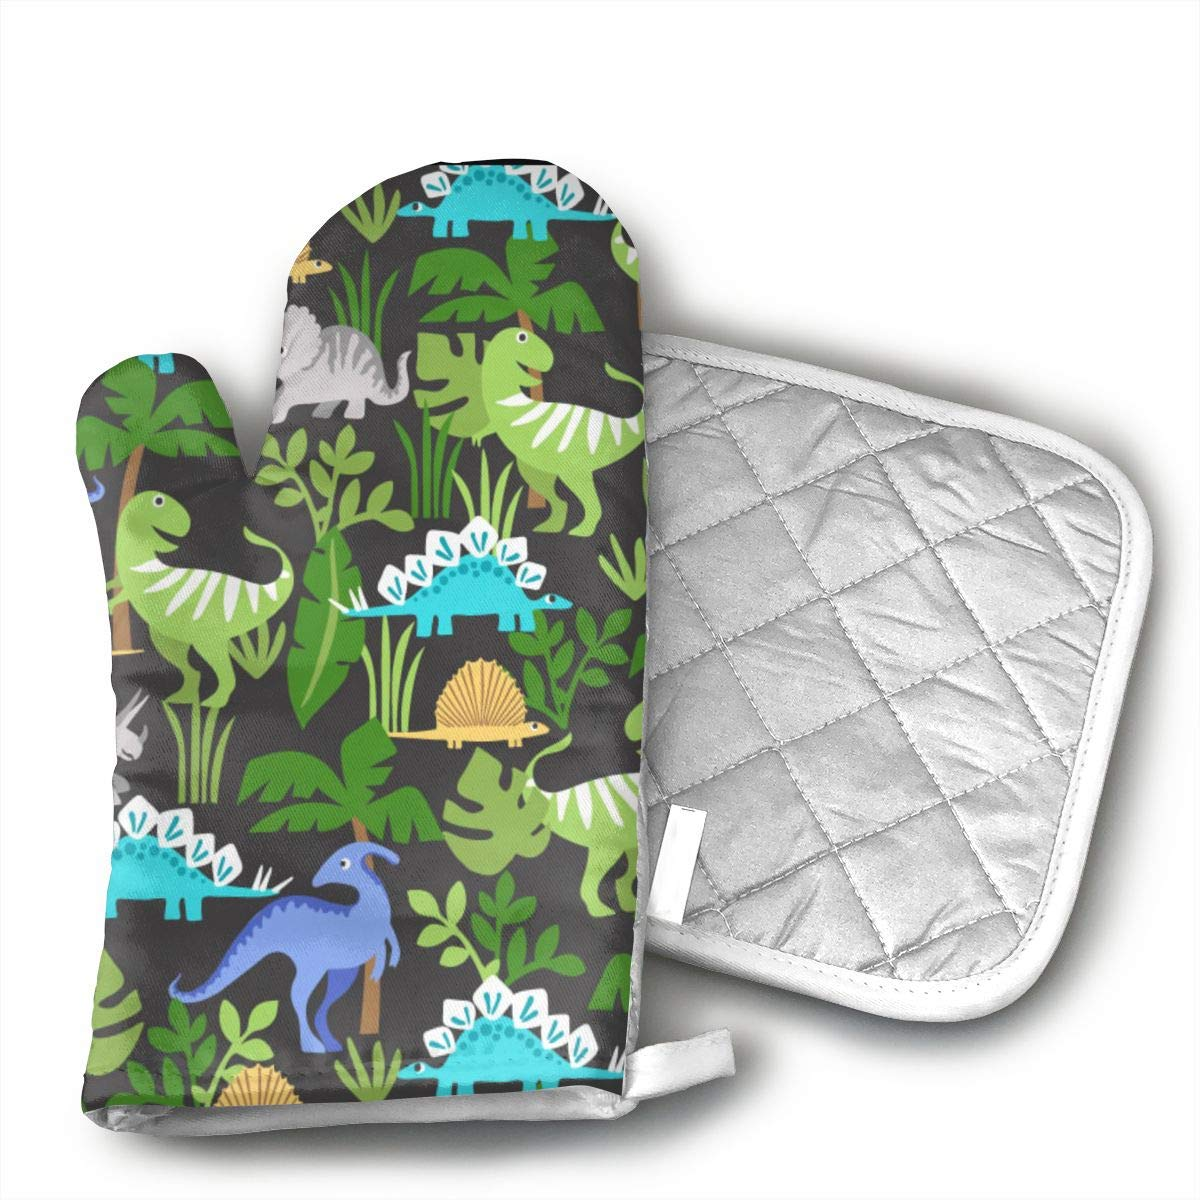 JFNNRUOP Dino Oven Mitts,with Potholders Oven Gloves,Insulated Quilted Cotton Potholders